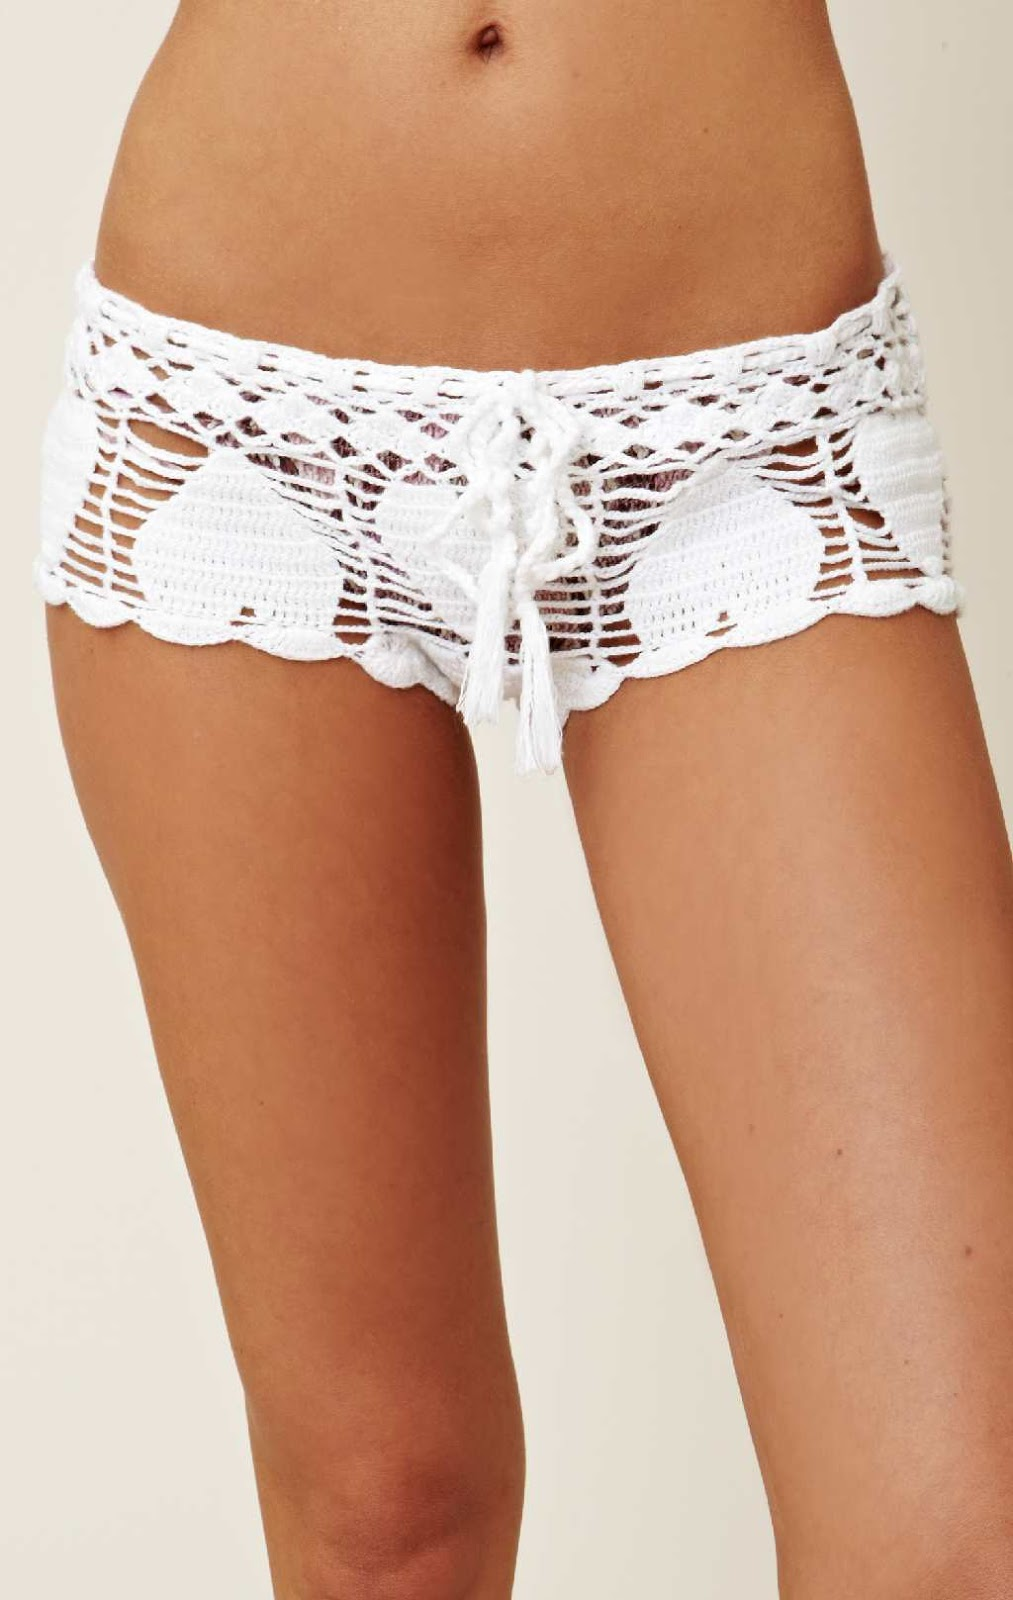 Available In White Crochet Shorts High Rise Floral Pattern Elastic Waistband Lined Shorts % Polyester.